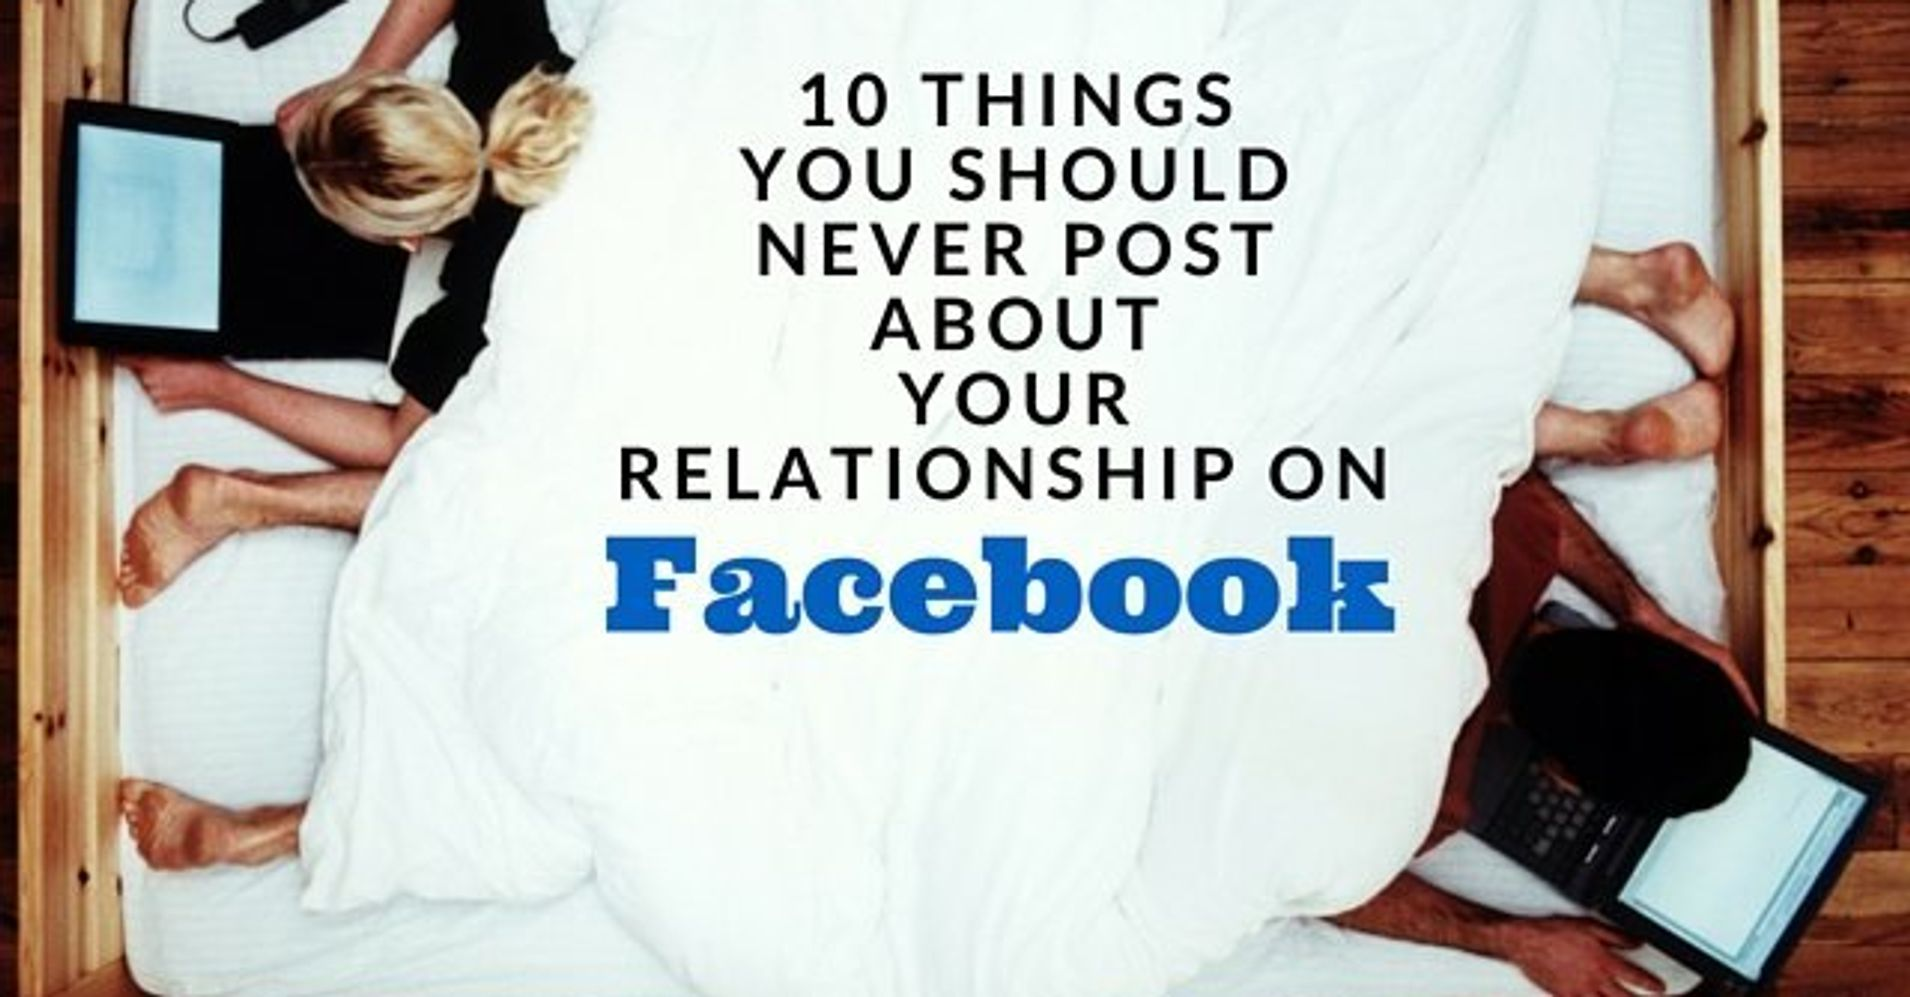 10 Things You Should Never Post About Your Relationship On Facebook